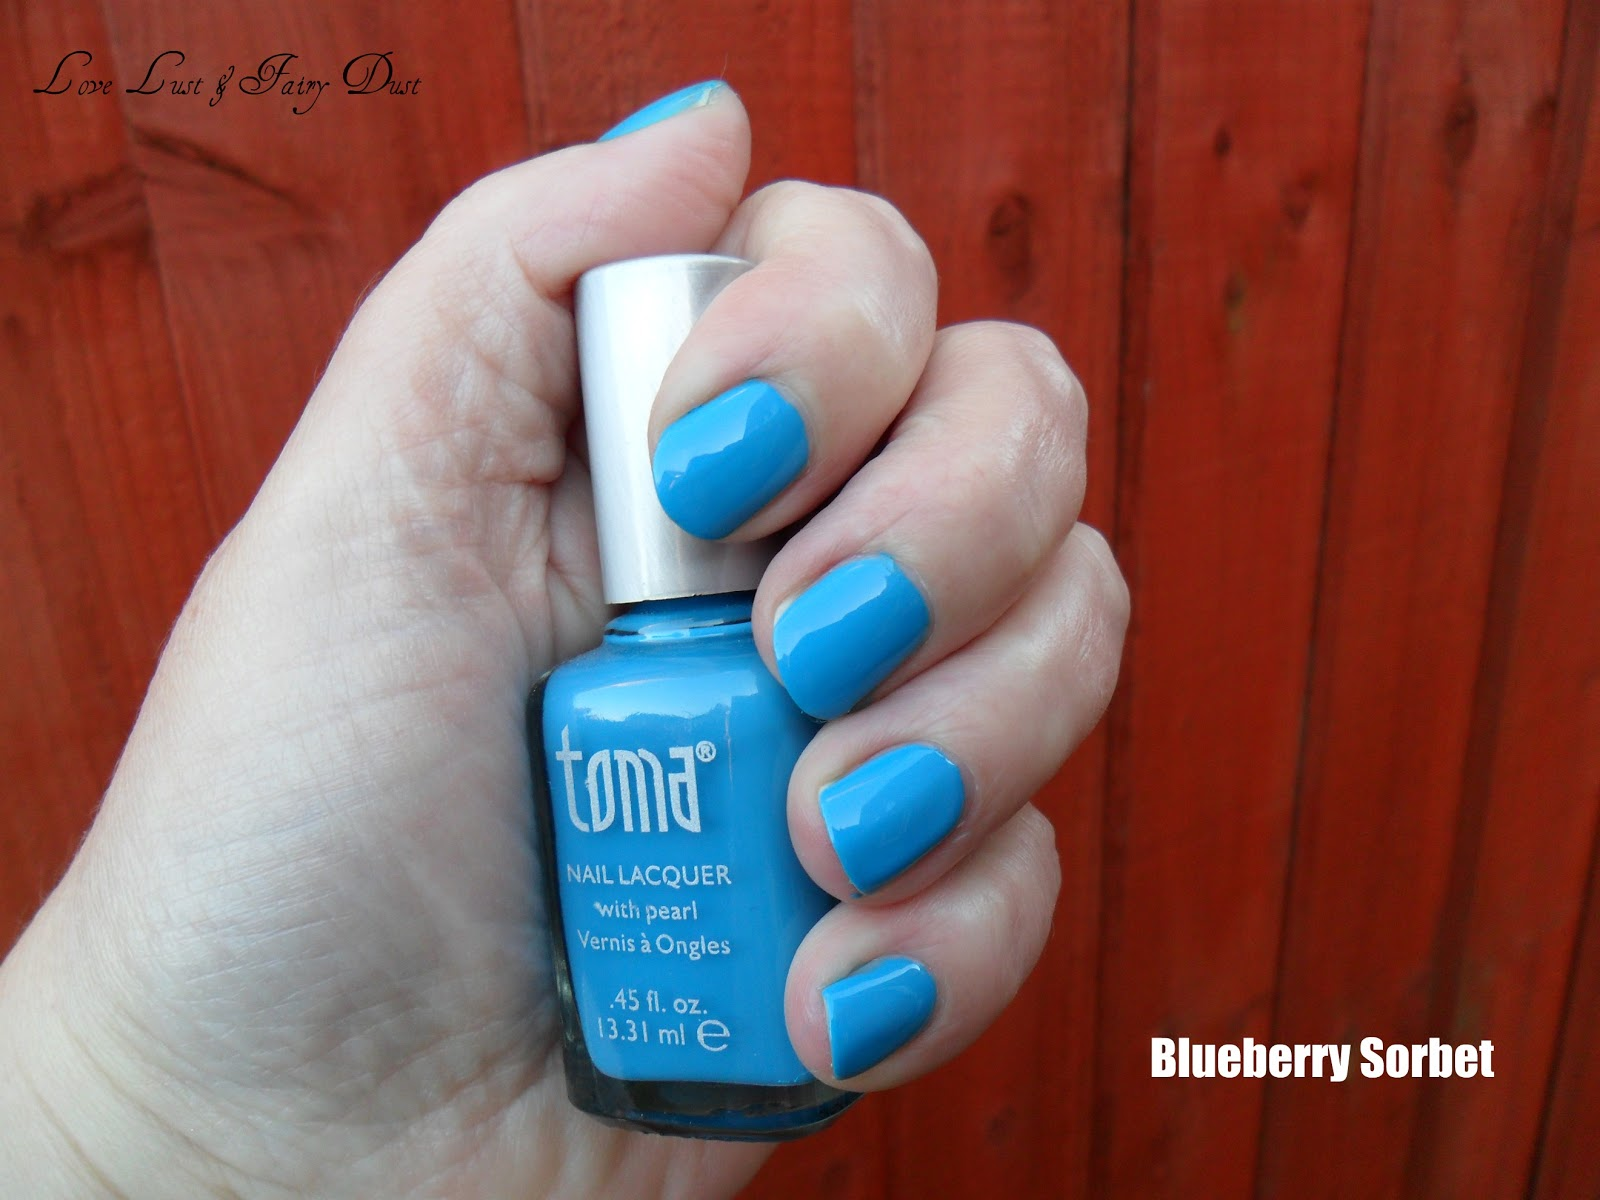 tutti frutti toma nail polish in blueberry sorbet